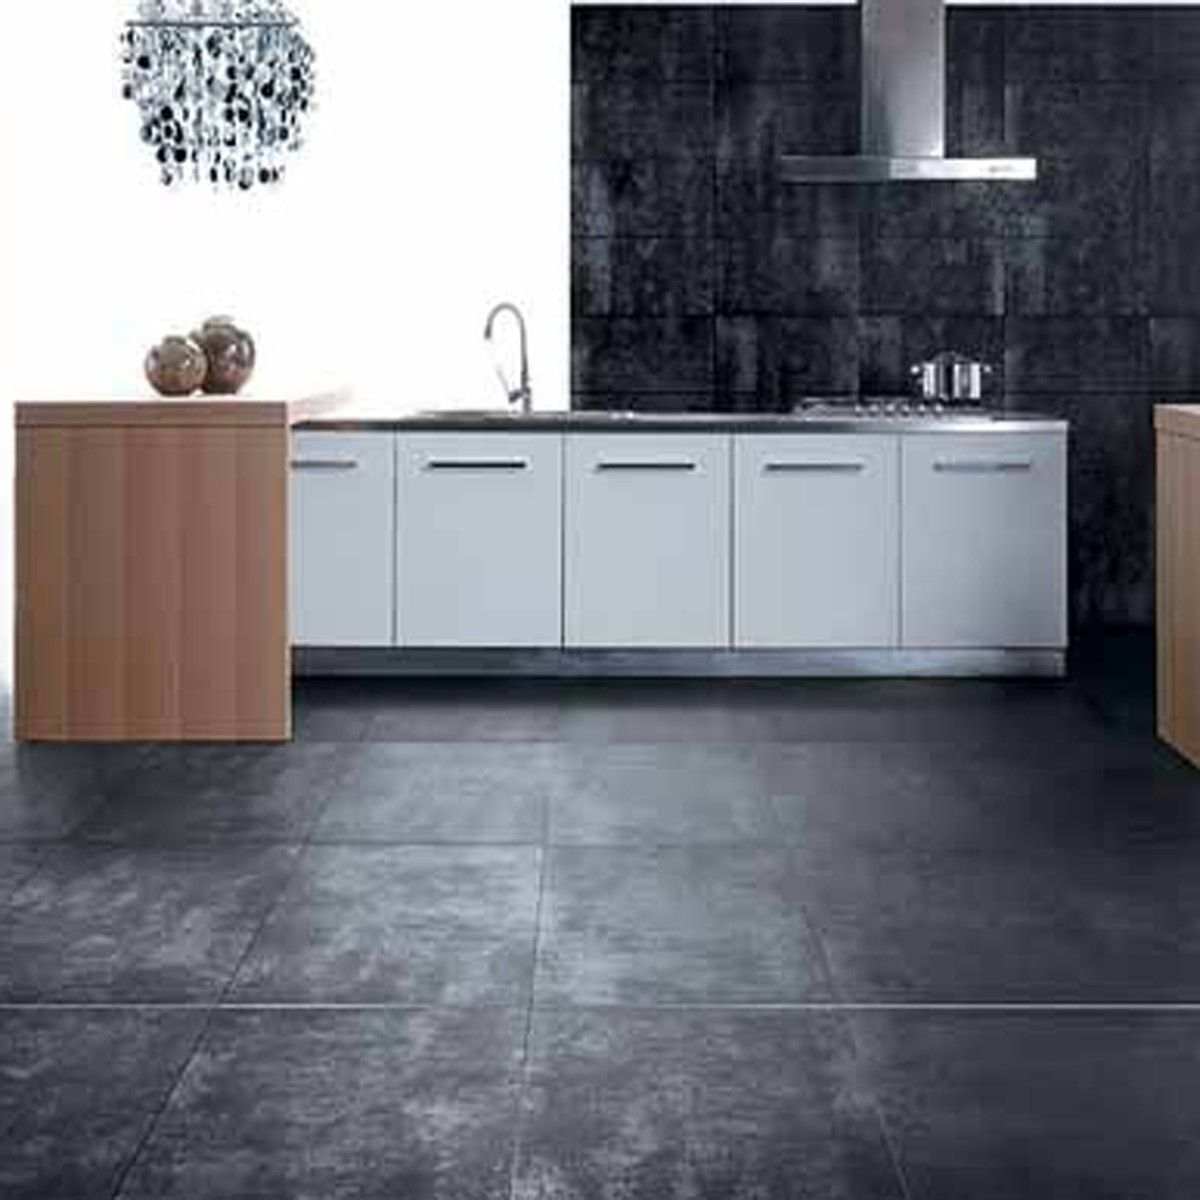 Metallic effect porcelain large format wall and floor tile with workshop modern kitchen tile rectified modular through body porcelain tile great look for a kitchen floor dailygadgetfo Image collections